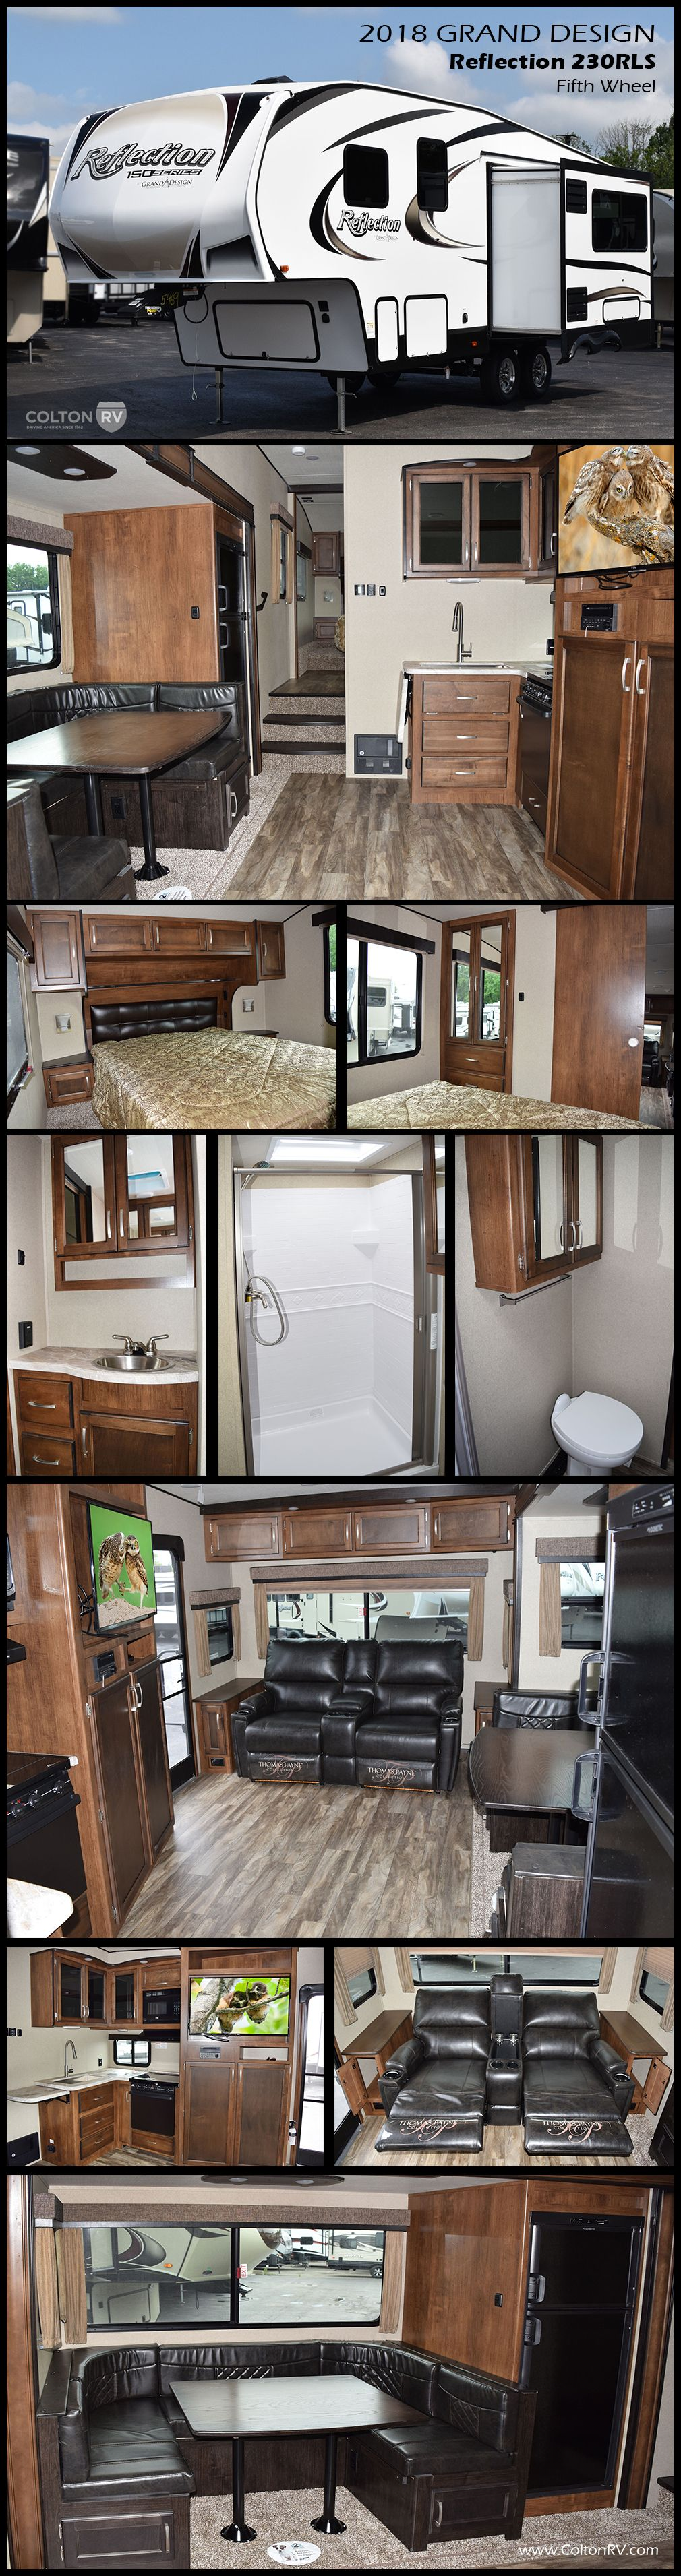 The Grand Design Reflection 150 Series Model 230rls Fifth Wheel